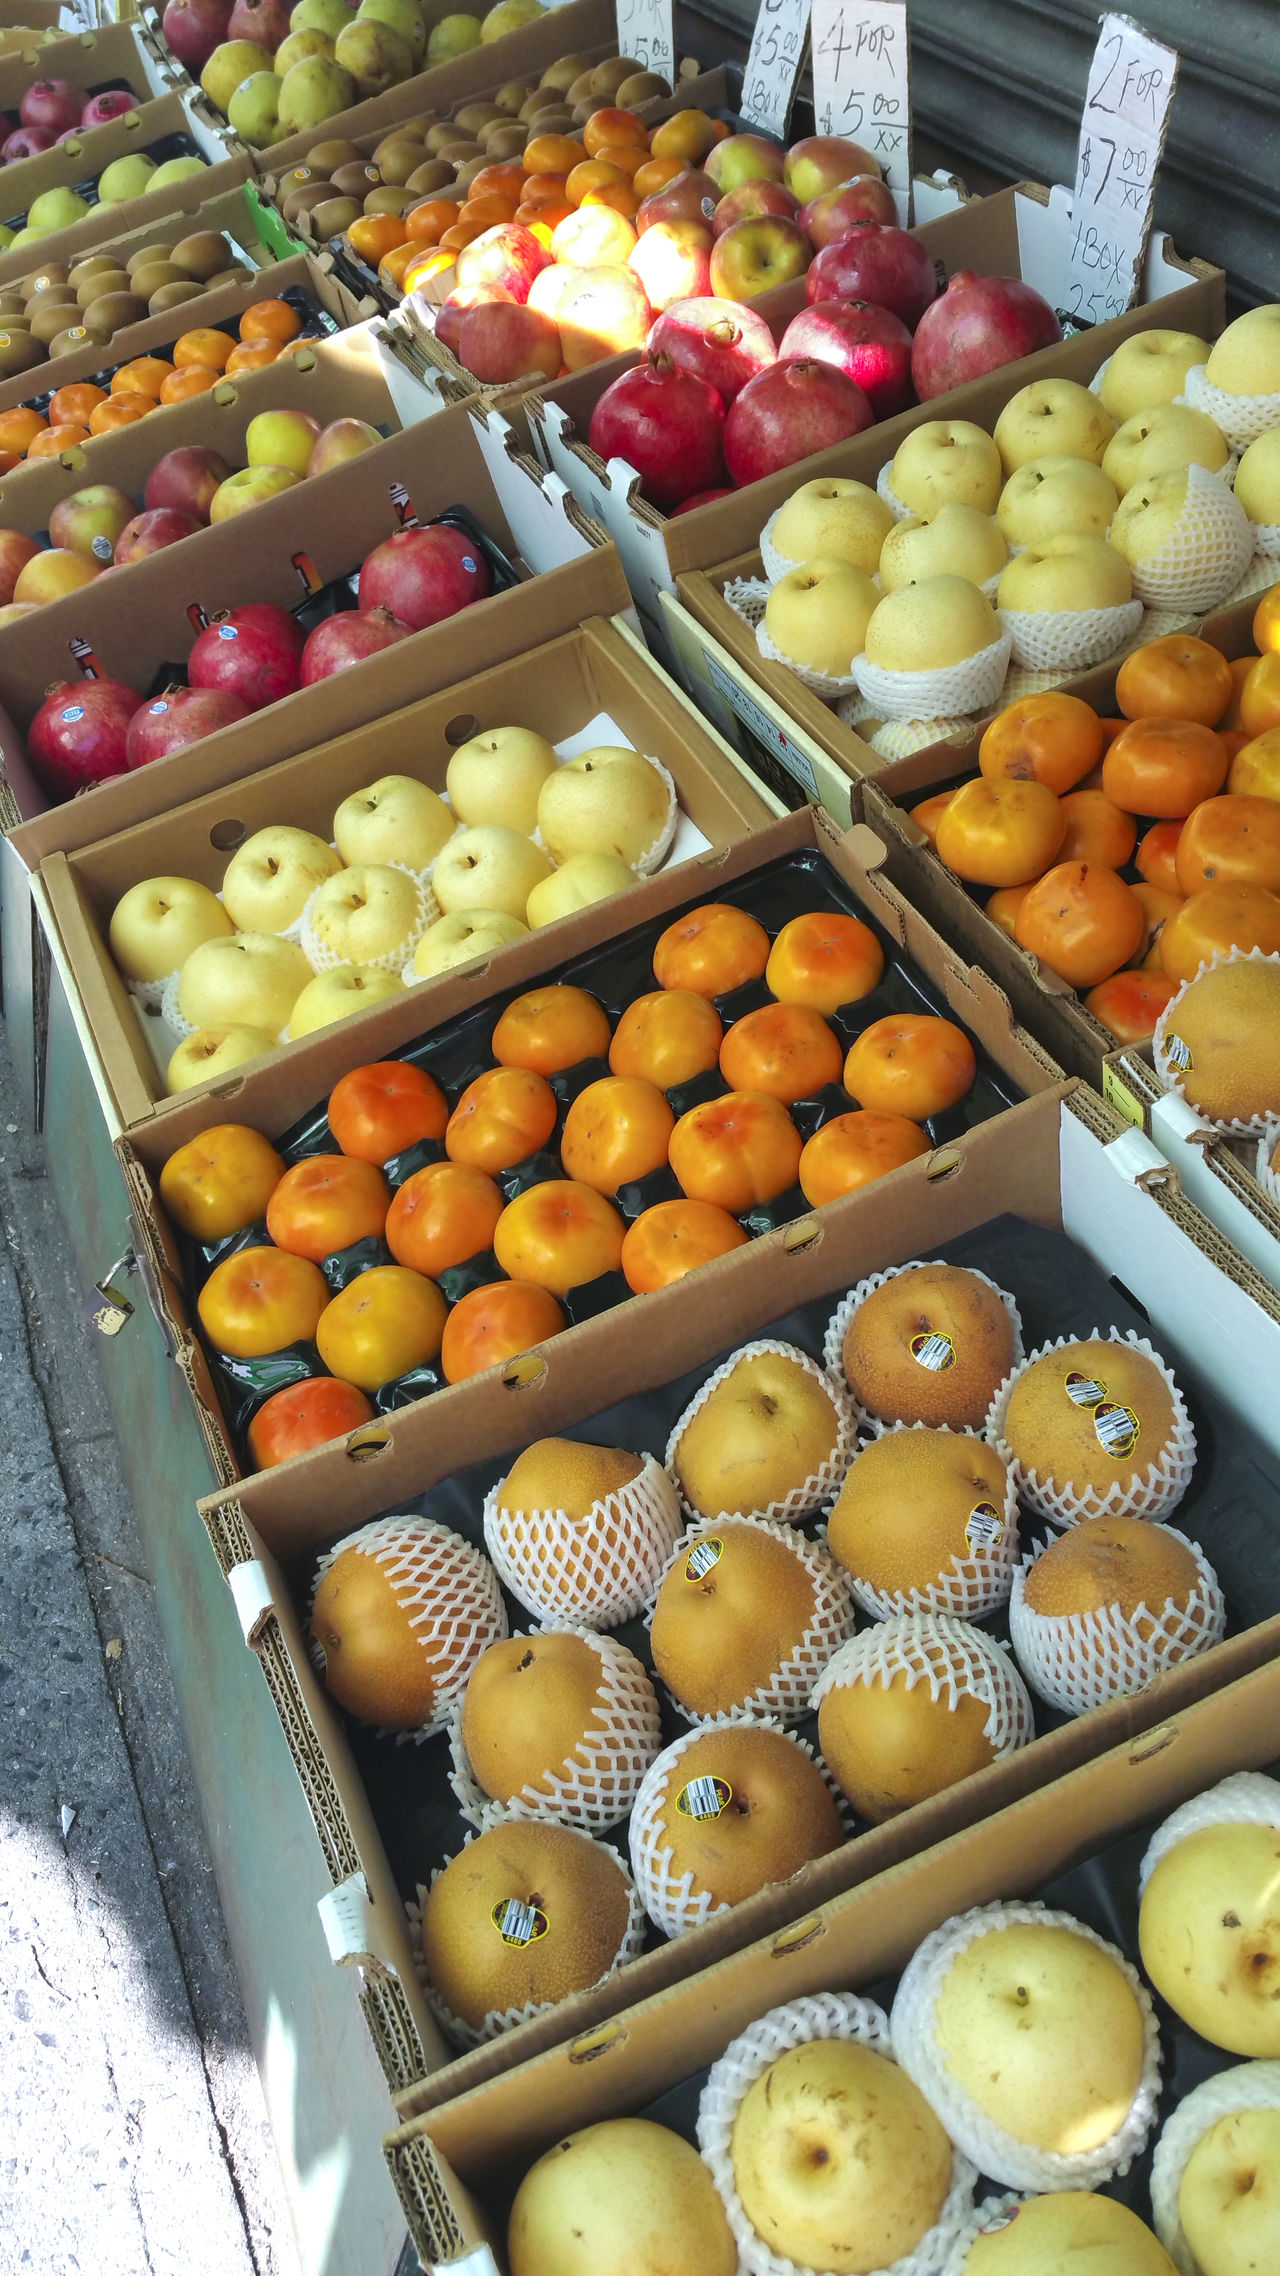 exotic fruit for sale at an outdoor market in Chinatown, New York Abundance Arrangement Chinatown; Chinese Food; Color Photograph; Color Photography; Different; Display; Exotic; Farmer's Market; Fruit; N.Y.; New York City; Nutritious; NY; Organic; Still Life; Unusual; Outdoors; Food; Market Choice Food And Drink Freshness Fruit Healthy Eating Large Group Of Objects Still Life Variation